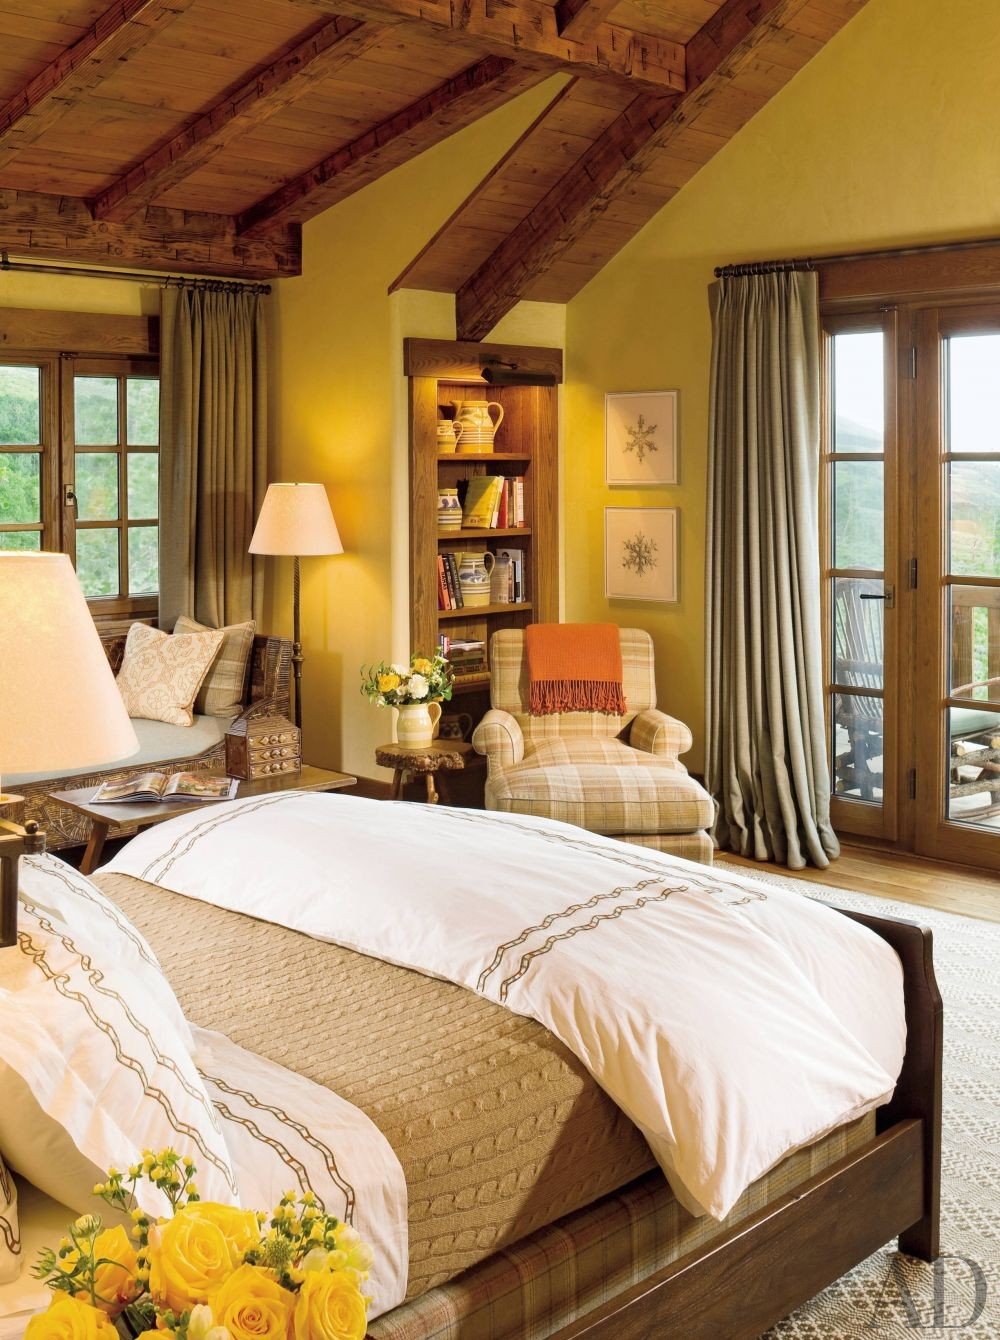 Bedroom by Cullman & Kravis and Resort Design Architects in Colorado